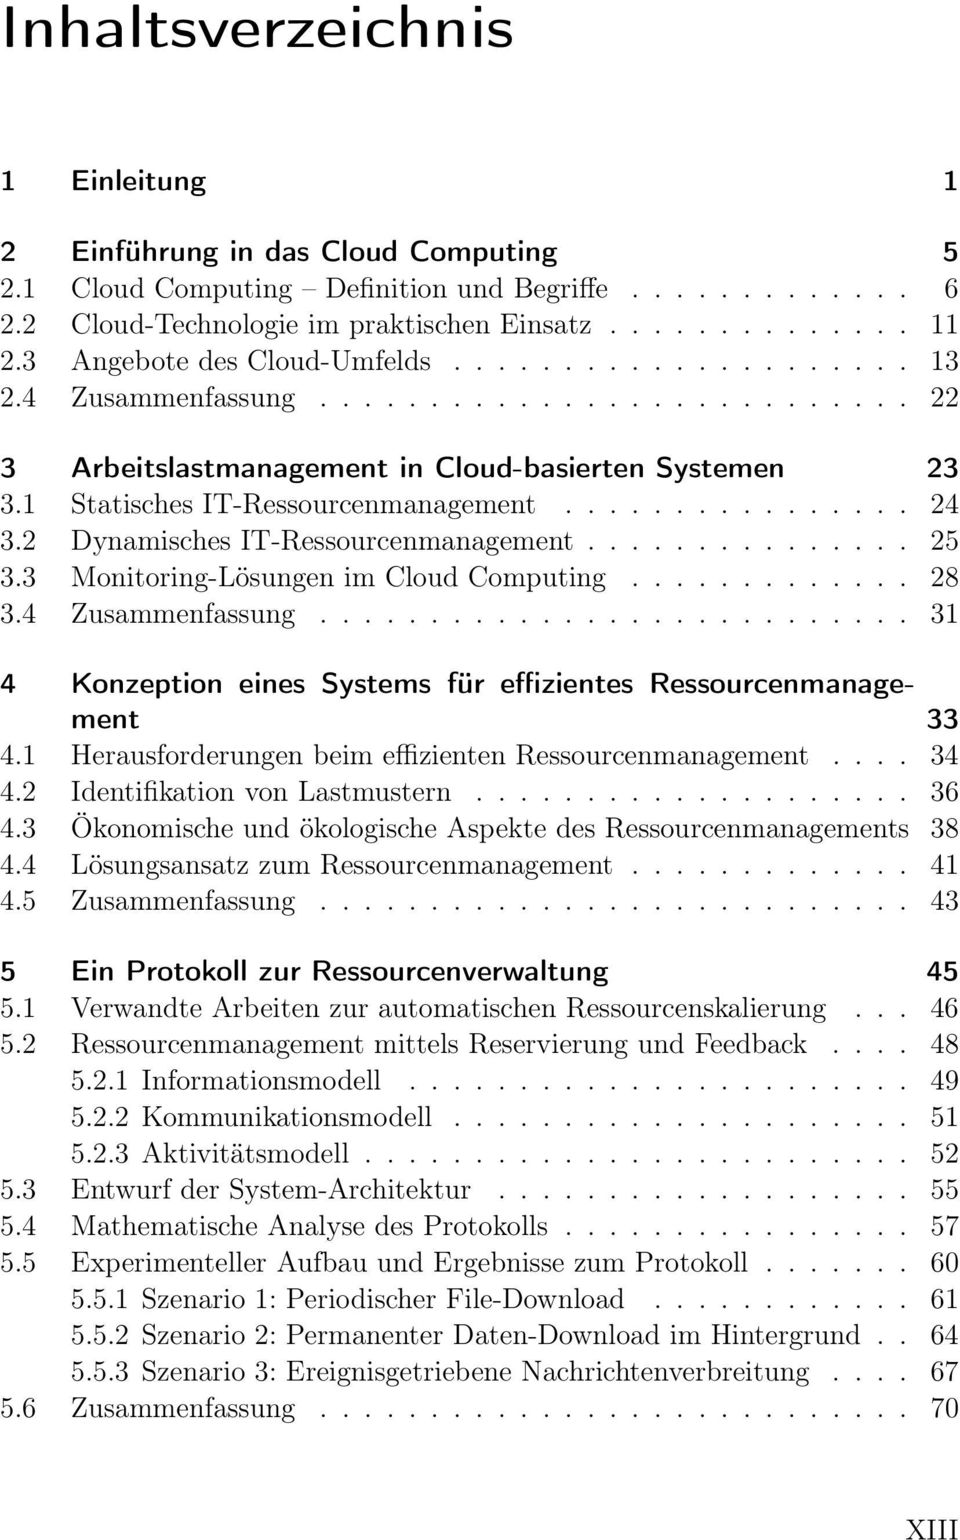 ............... 24 3.2 Dynamisches IT-Ressourcenmanagement............... 25 3.3 Monitoring-Lösungen im Cloud Computing............. 28 3.4 Zusammenfassung.